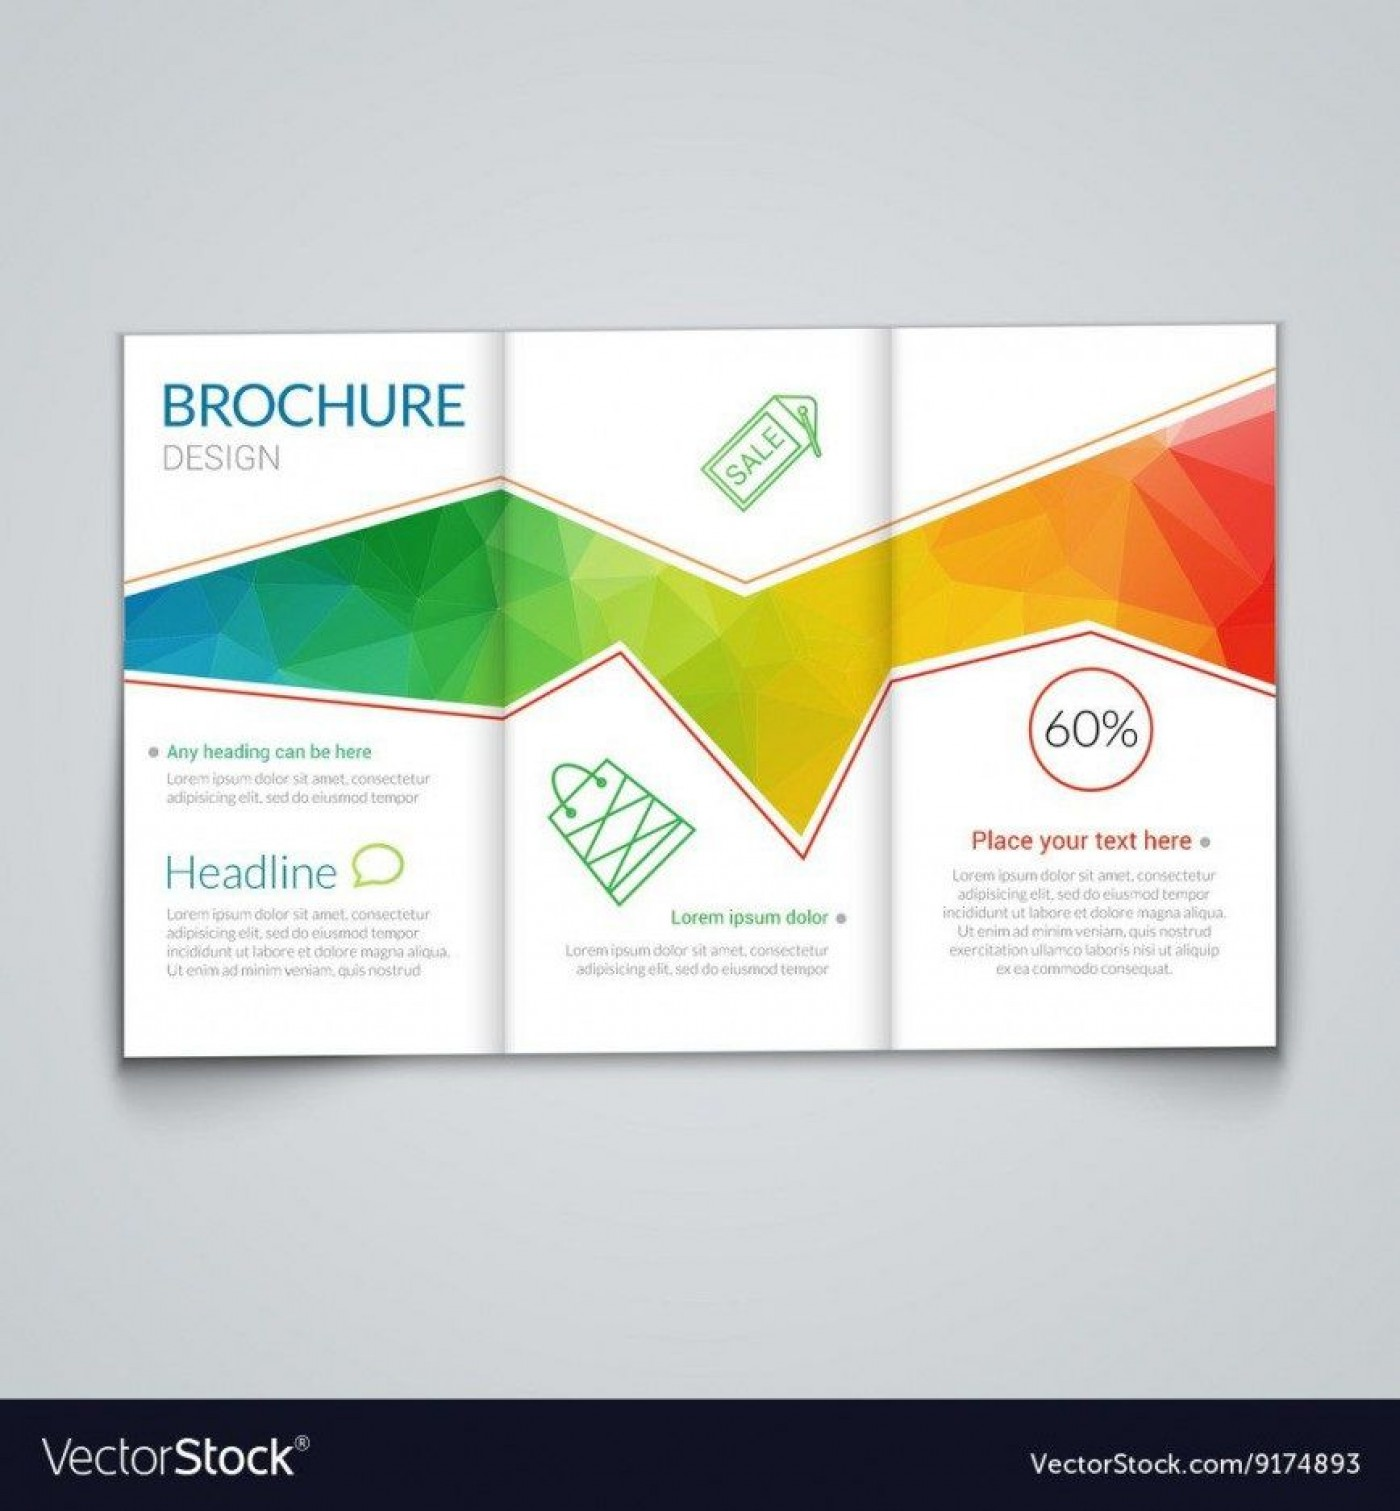 008 Incredible Download Brochure Template For Word 2007 Highest Clarity 1400